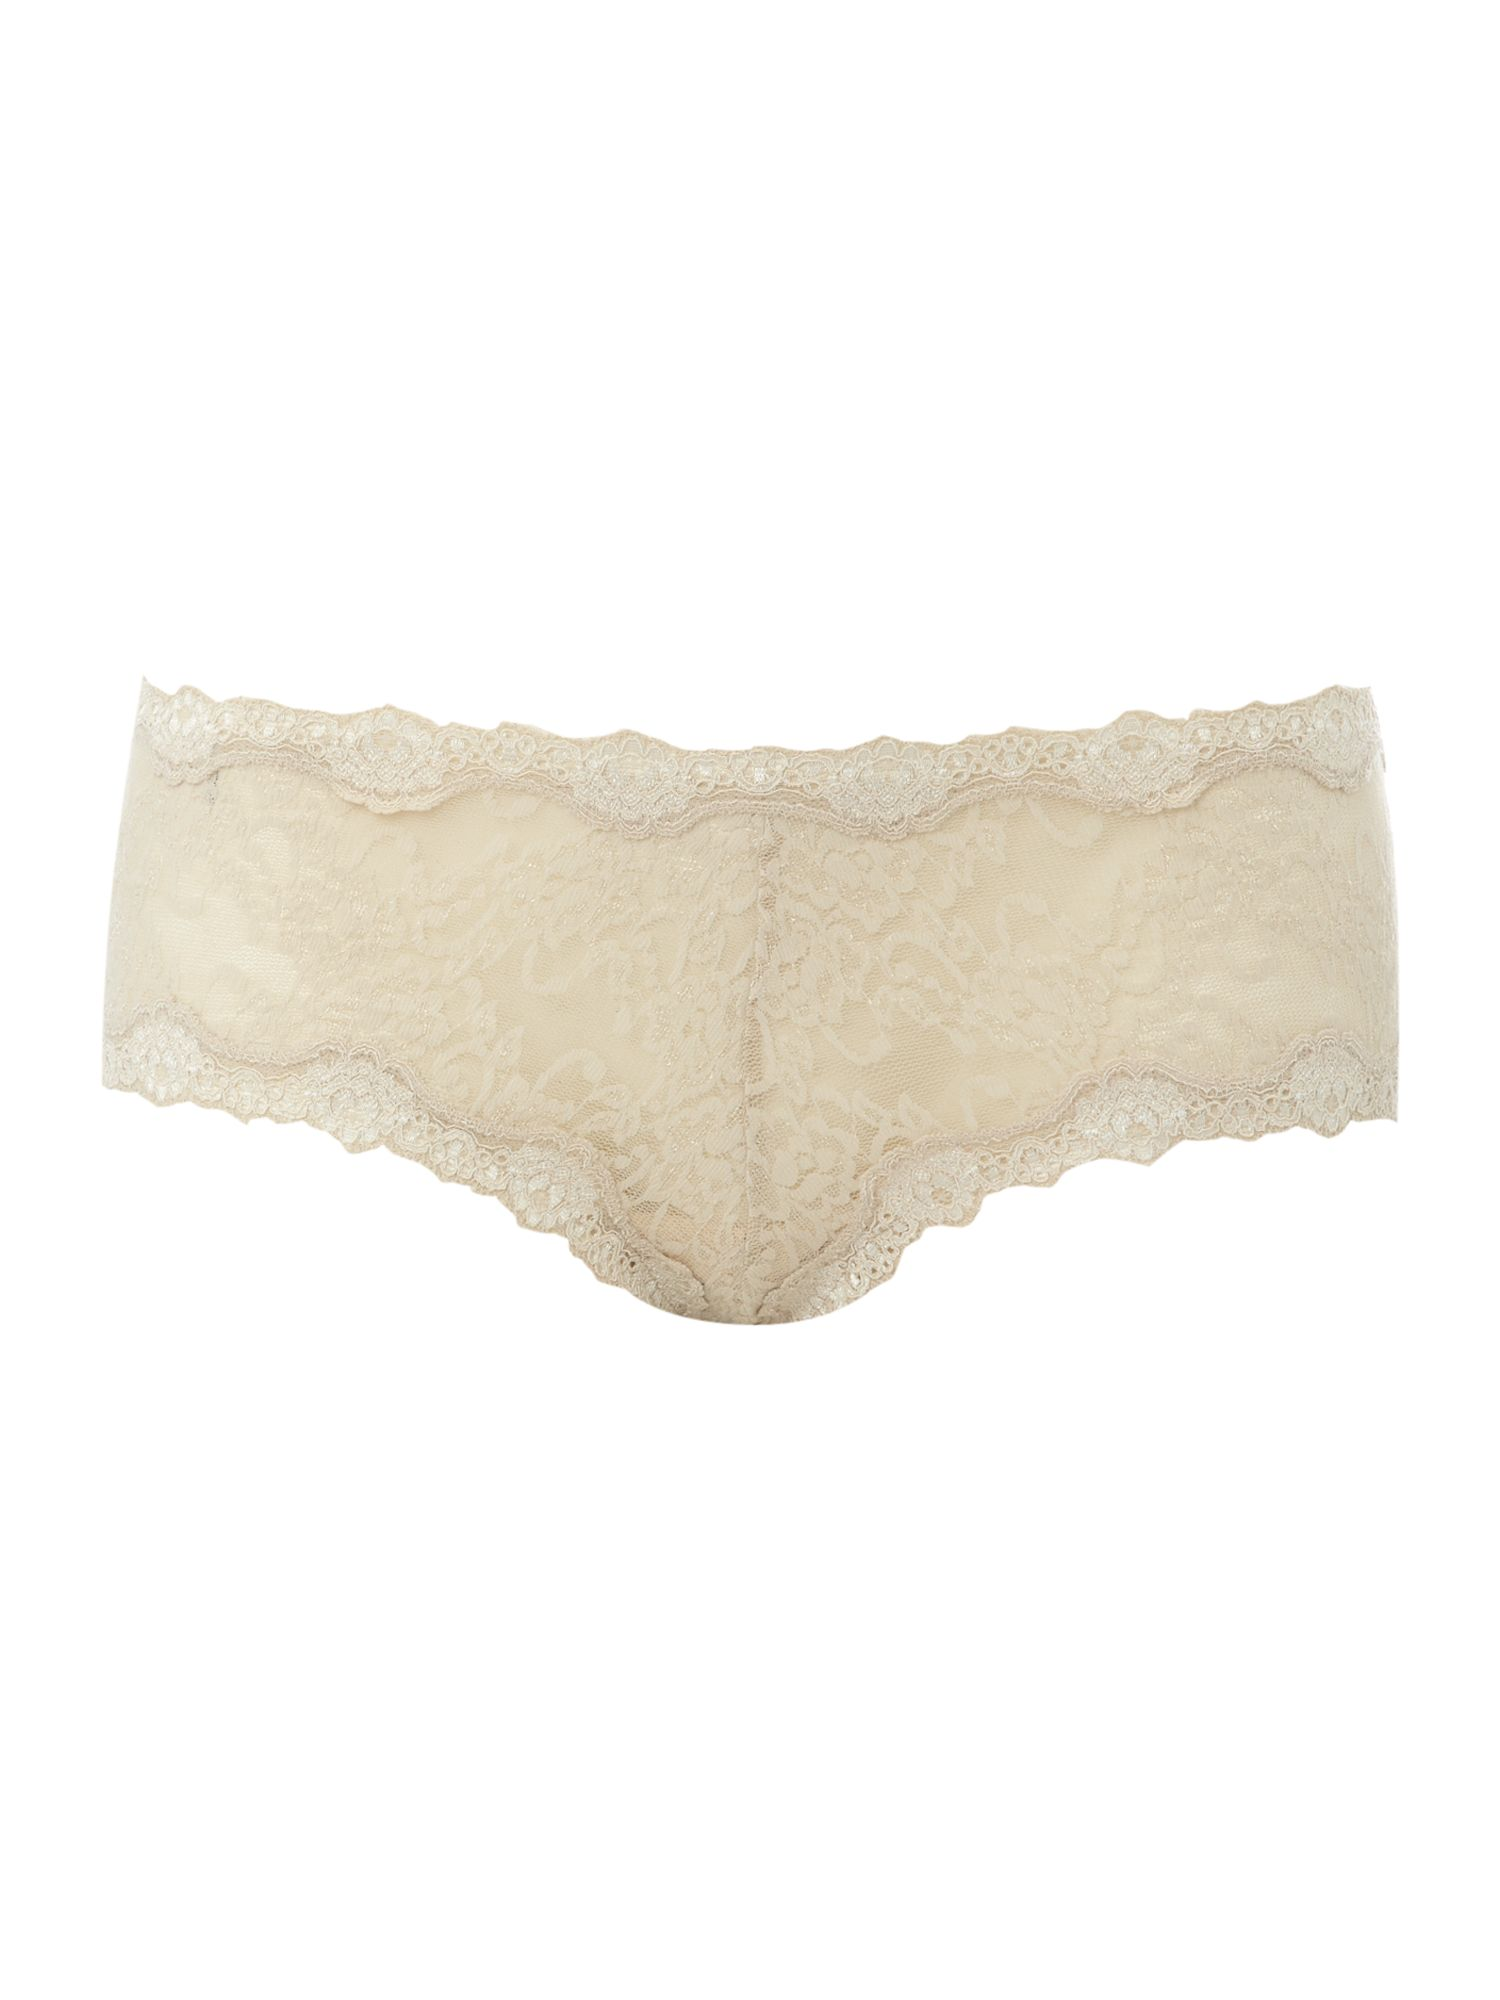 Women's Mary Portas & Kinky Knickers Scalloped edge knicker, Cream